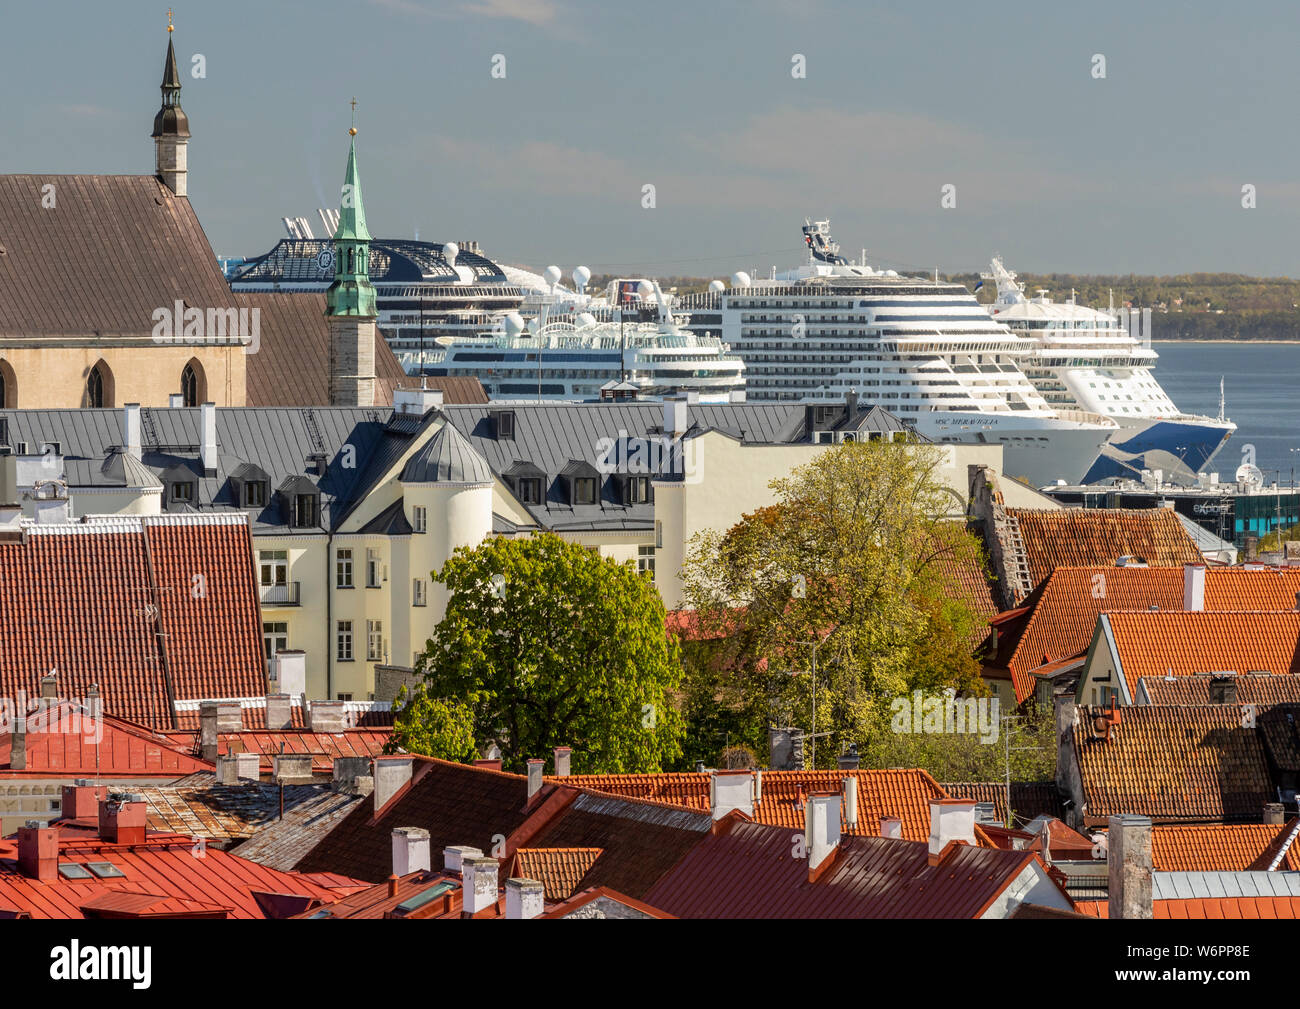 View of Old Town and Baltic Cruise Ships Docked in Harbor from Kohuotsa Viewpoint, Tallinn, Estonia Stock Photo